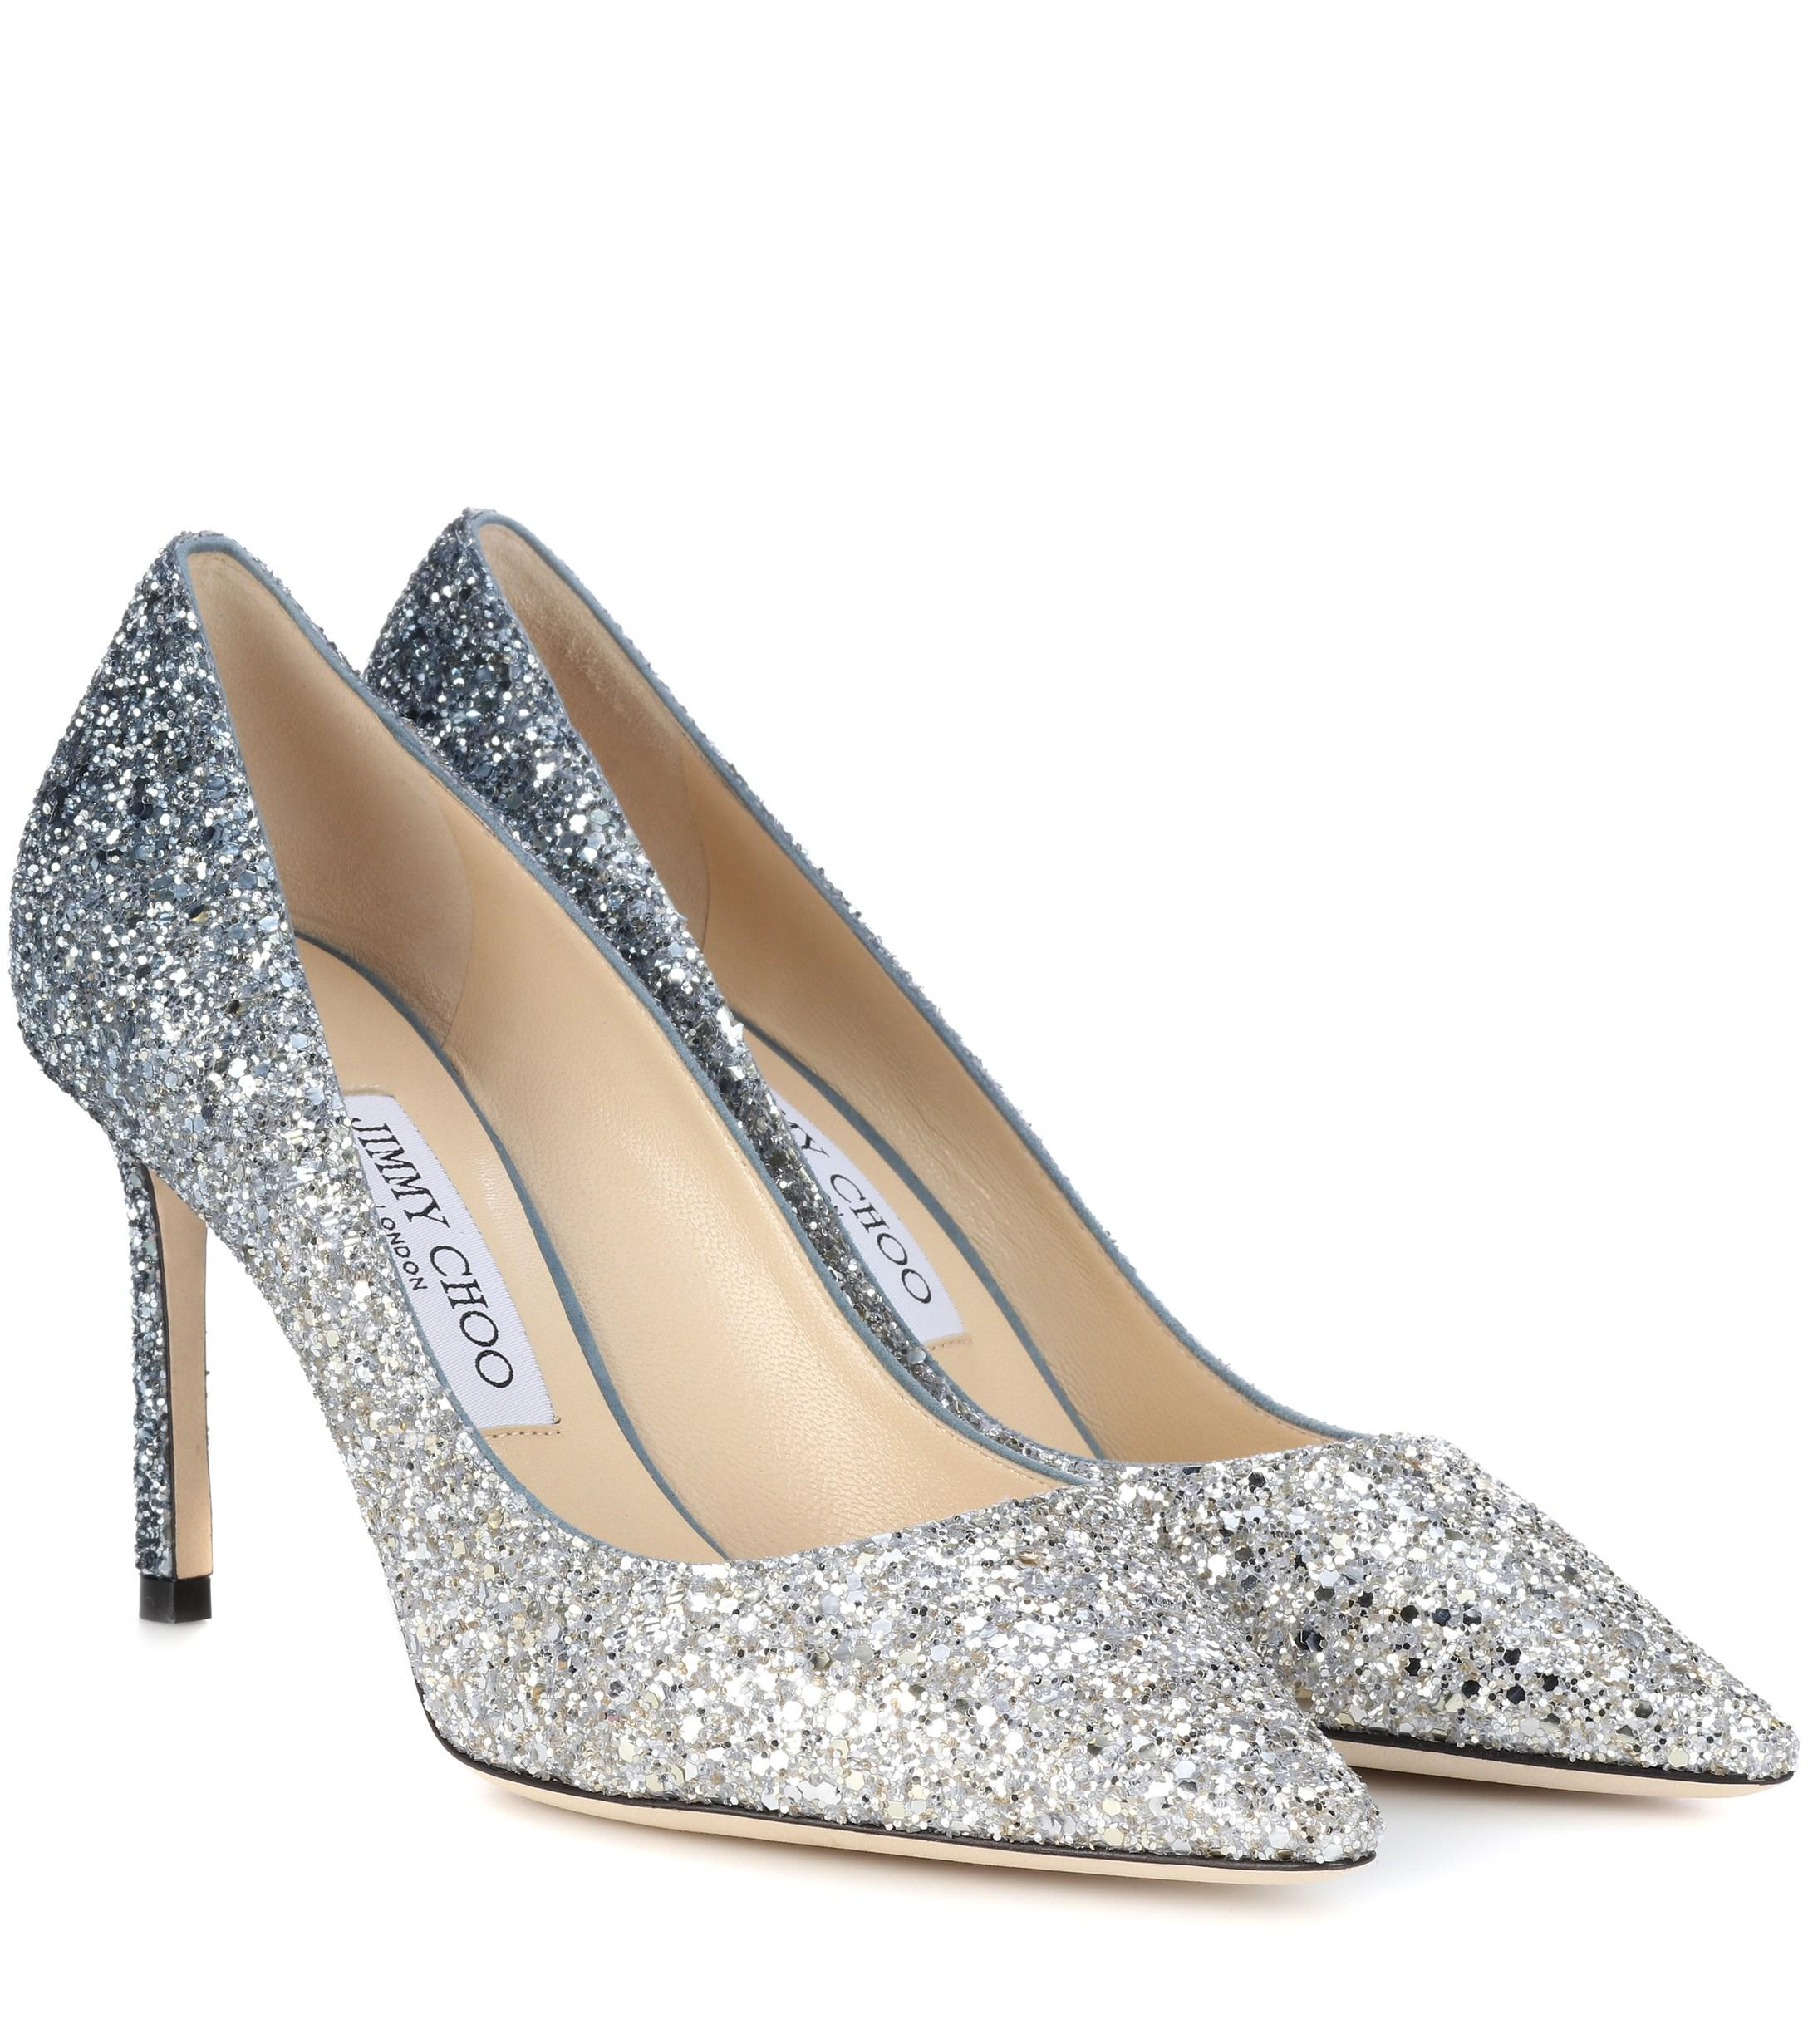 5c69ea306dd Jimmy Choo - Metallic Romy 85 Glitter Pumps - Lyst. View fullscreen